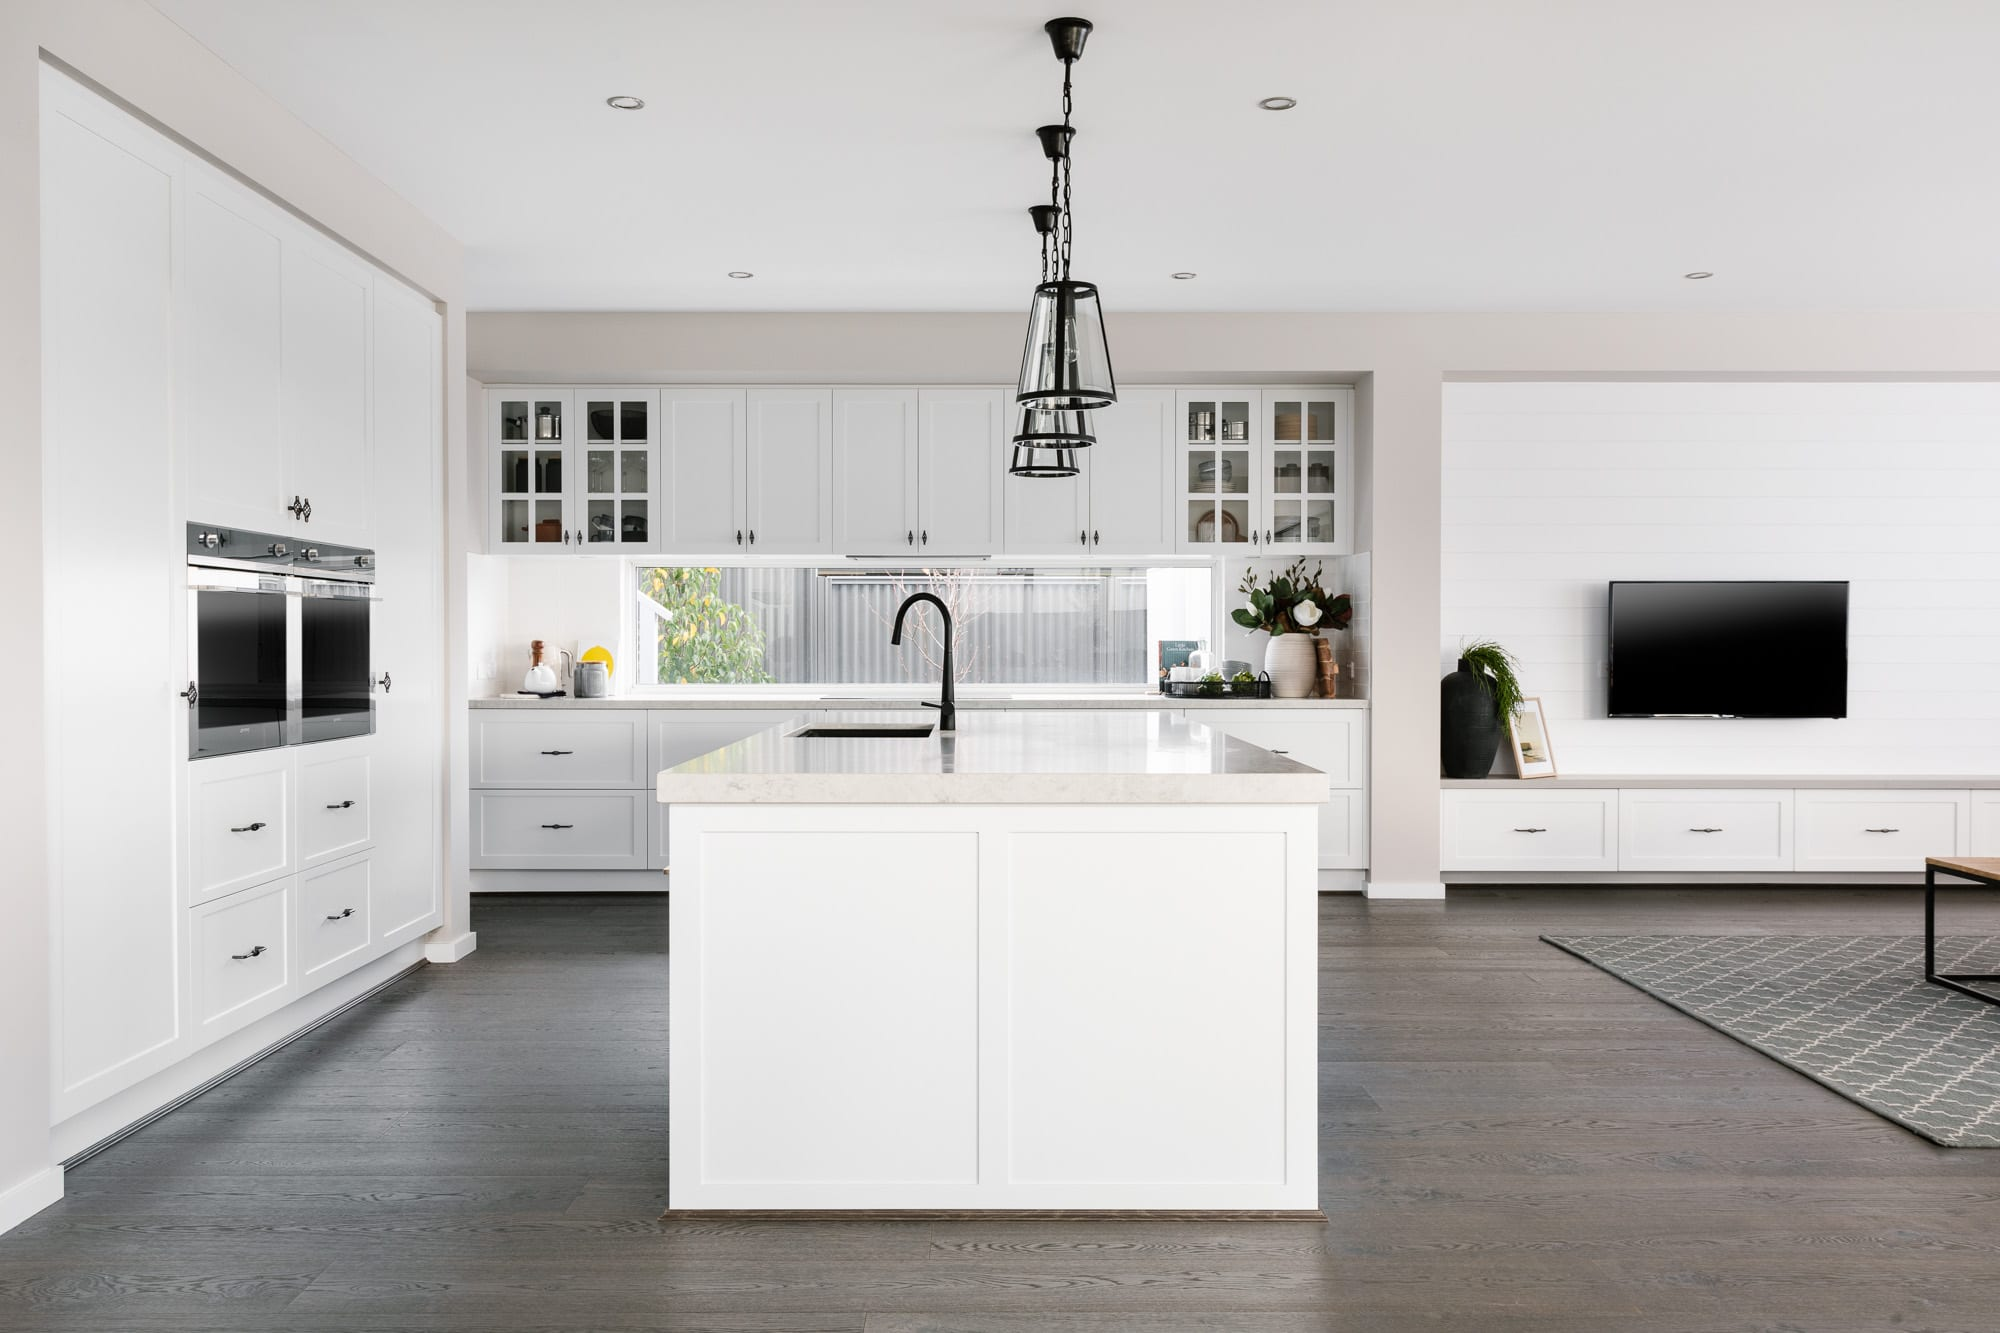 metricon white shaker kitchen cabinets with black metal handles and industrial pendant lights over island